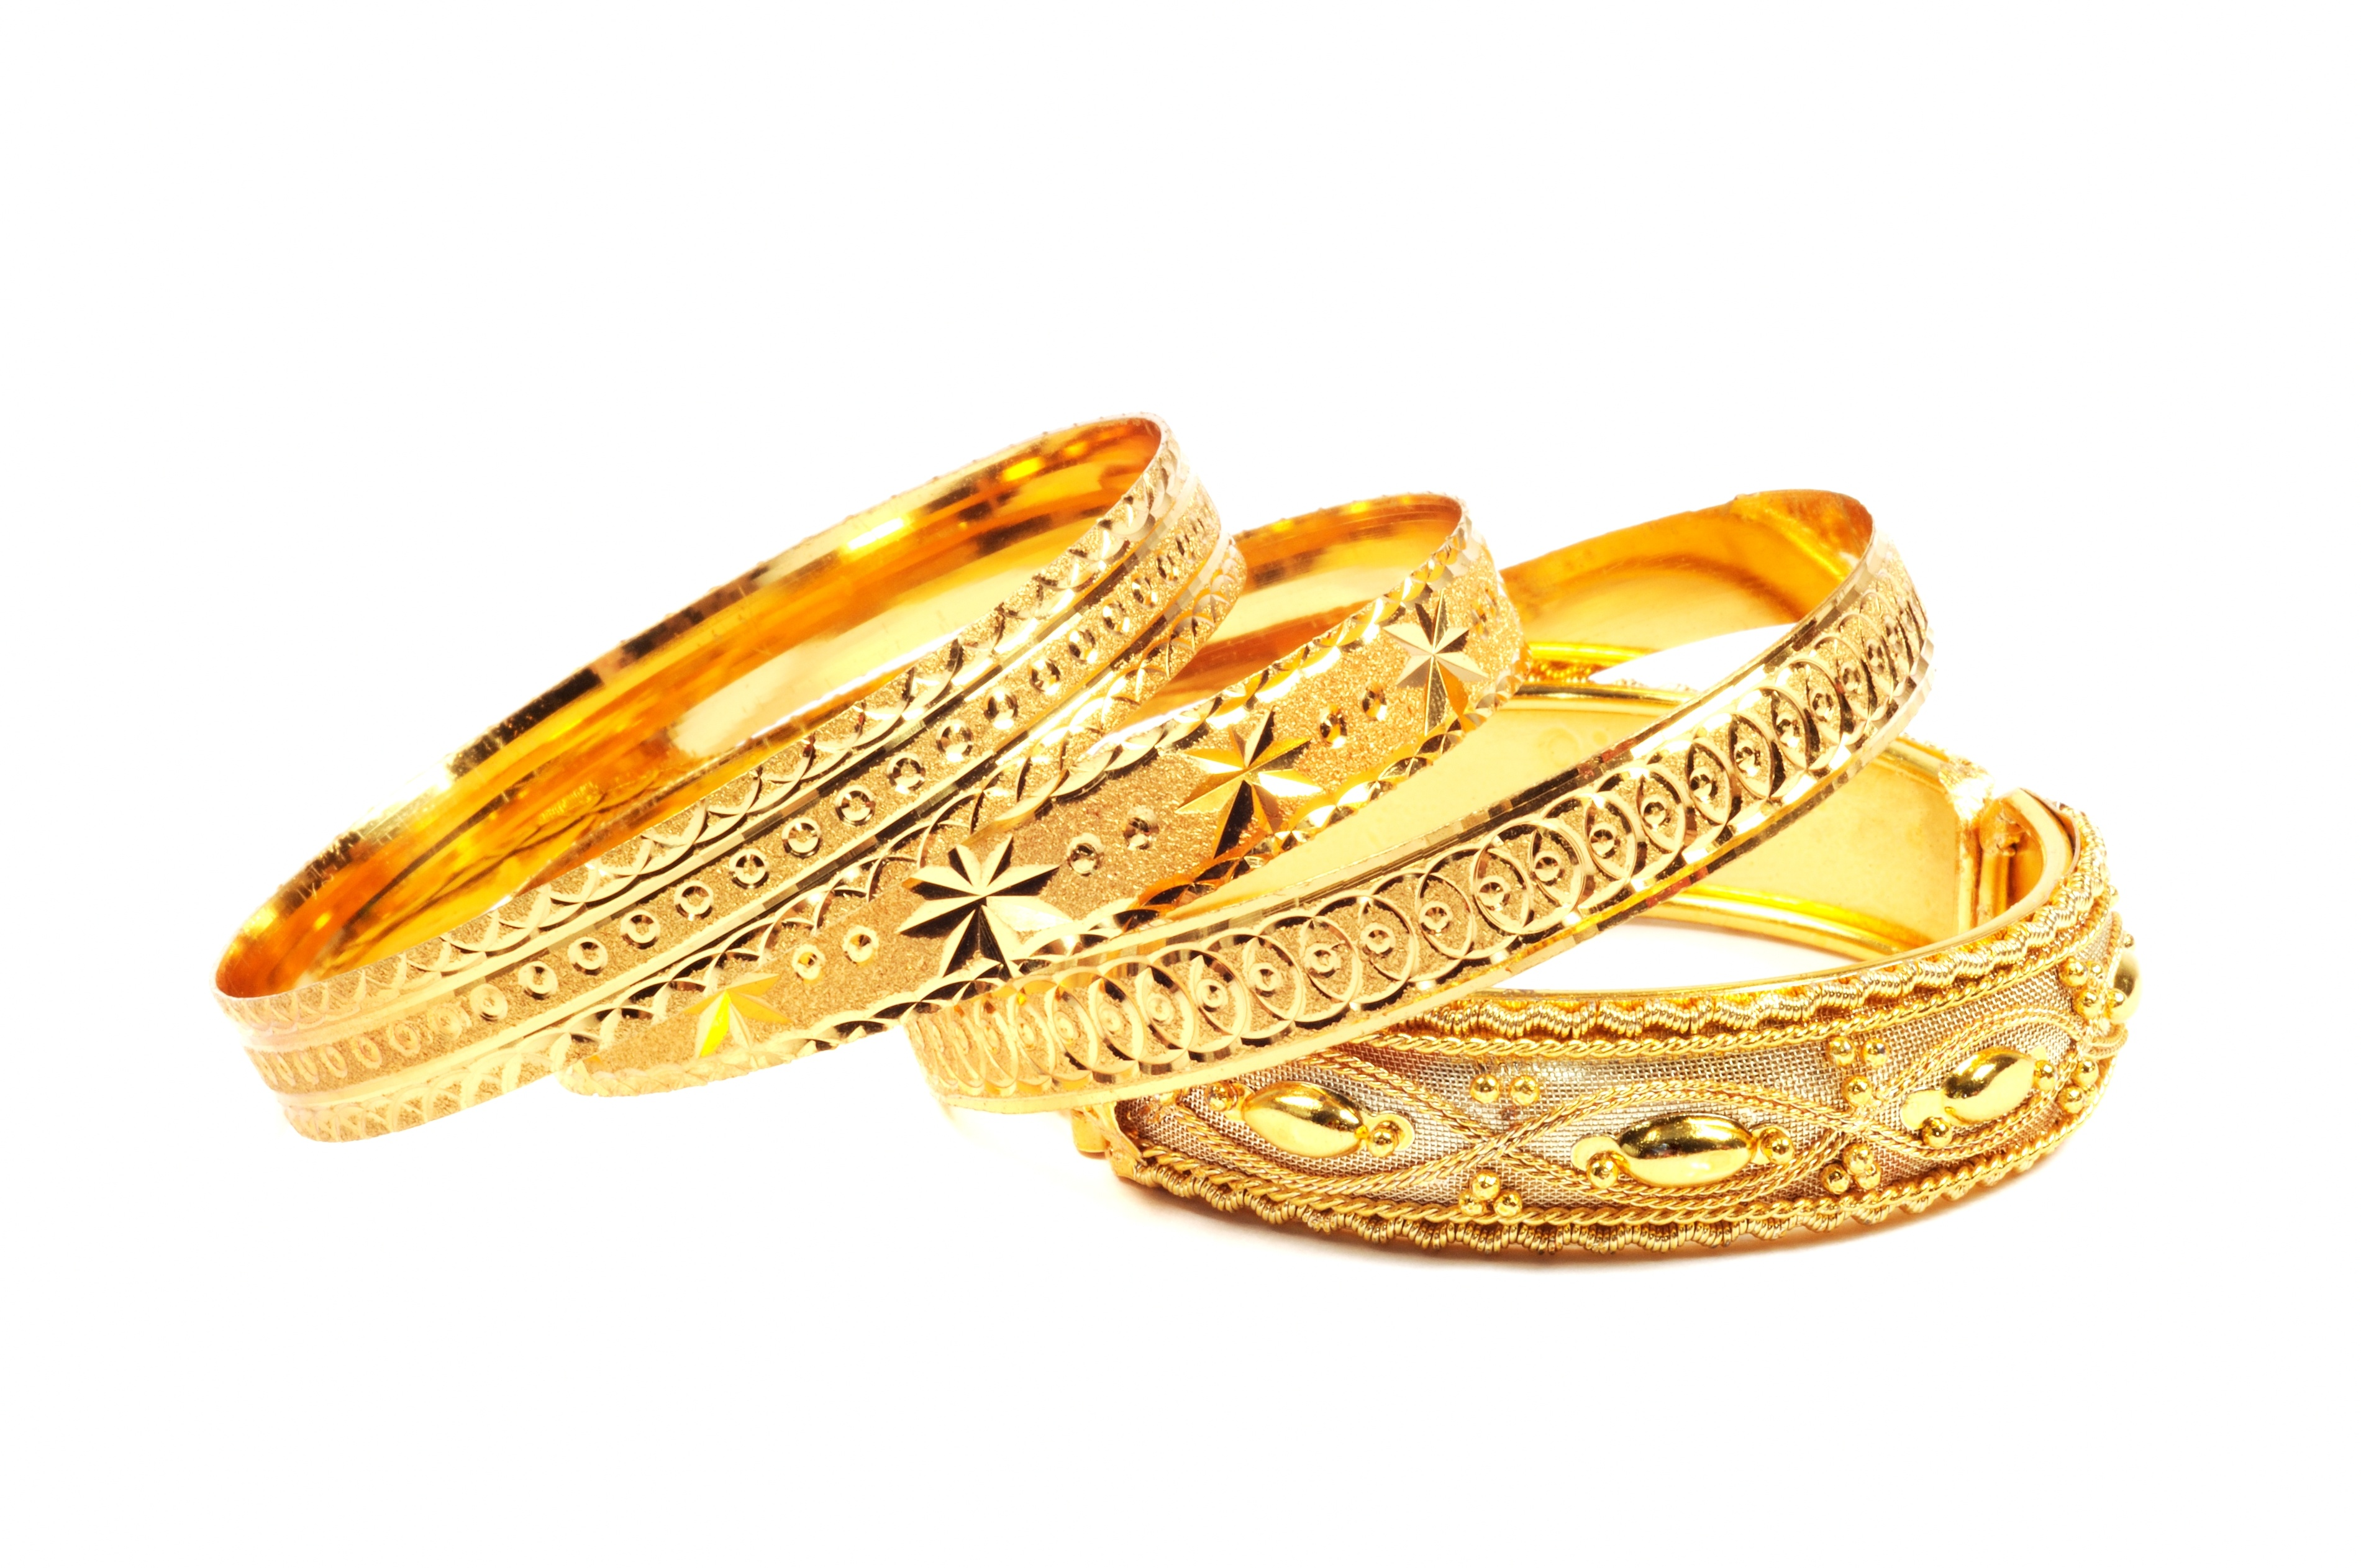 Gold S Jewelry Store Buy Gold The Best Photo Jewelry Vidhayaksansad Org